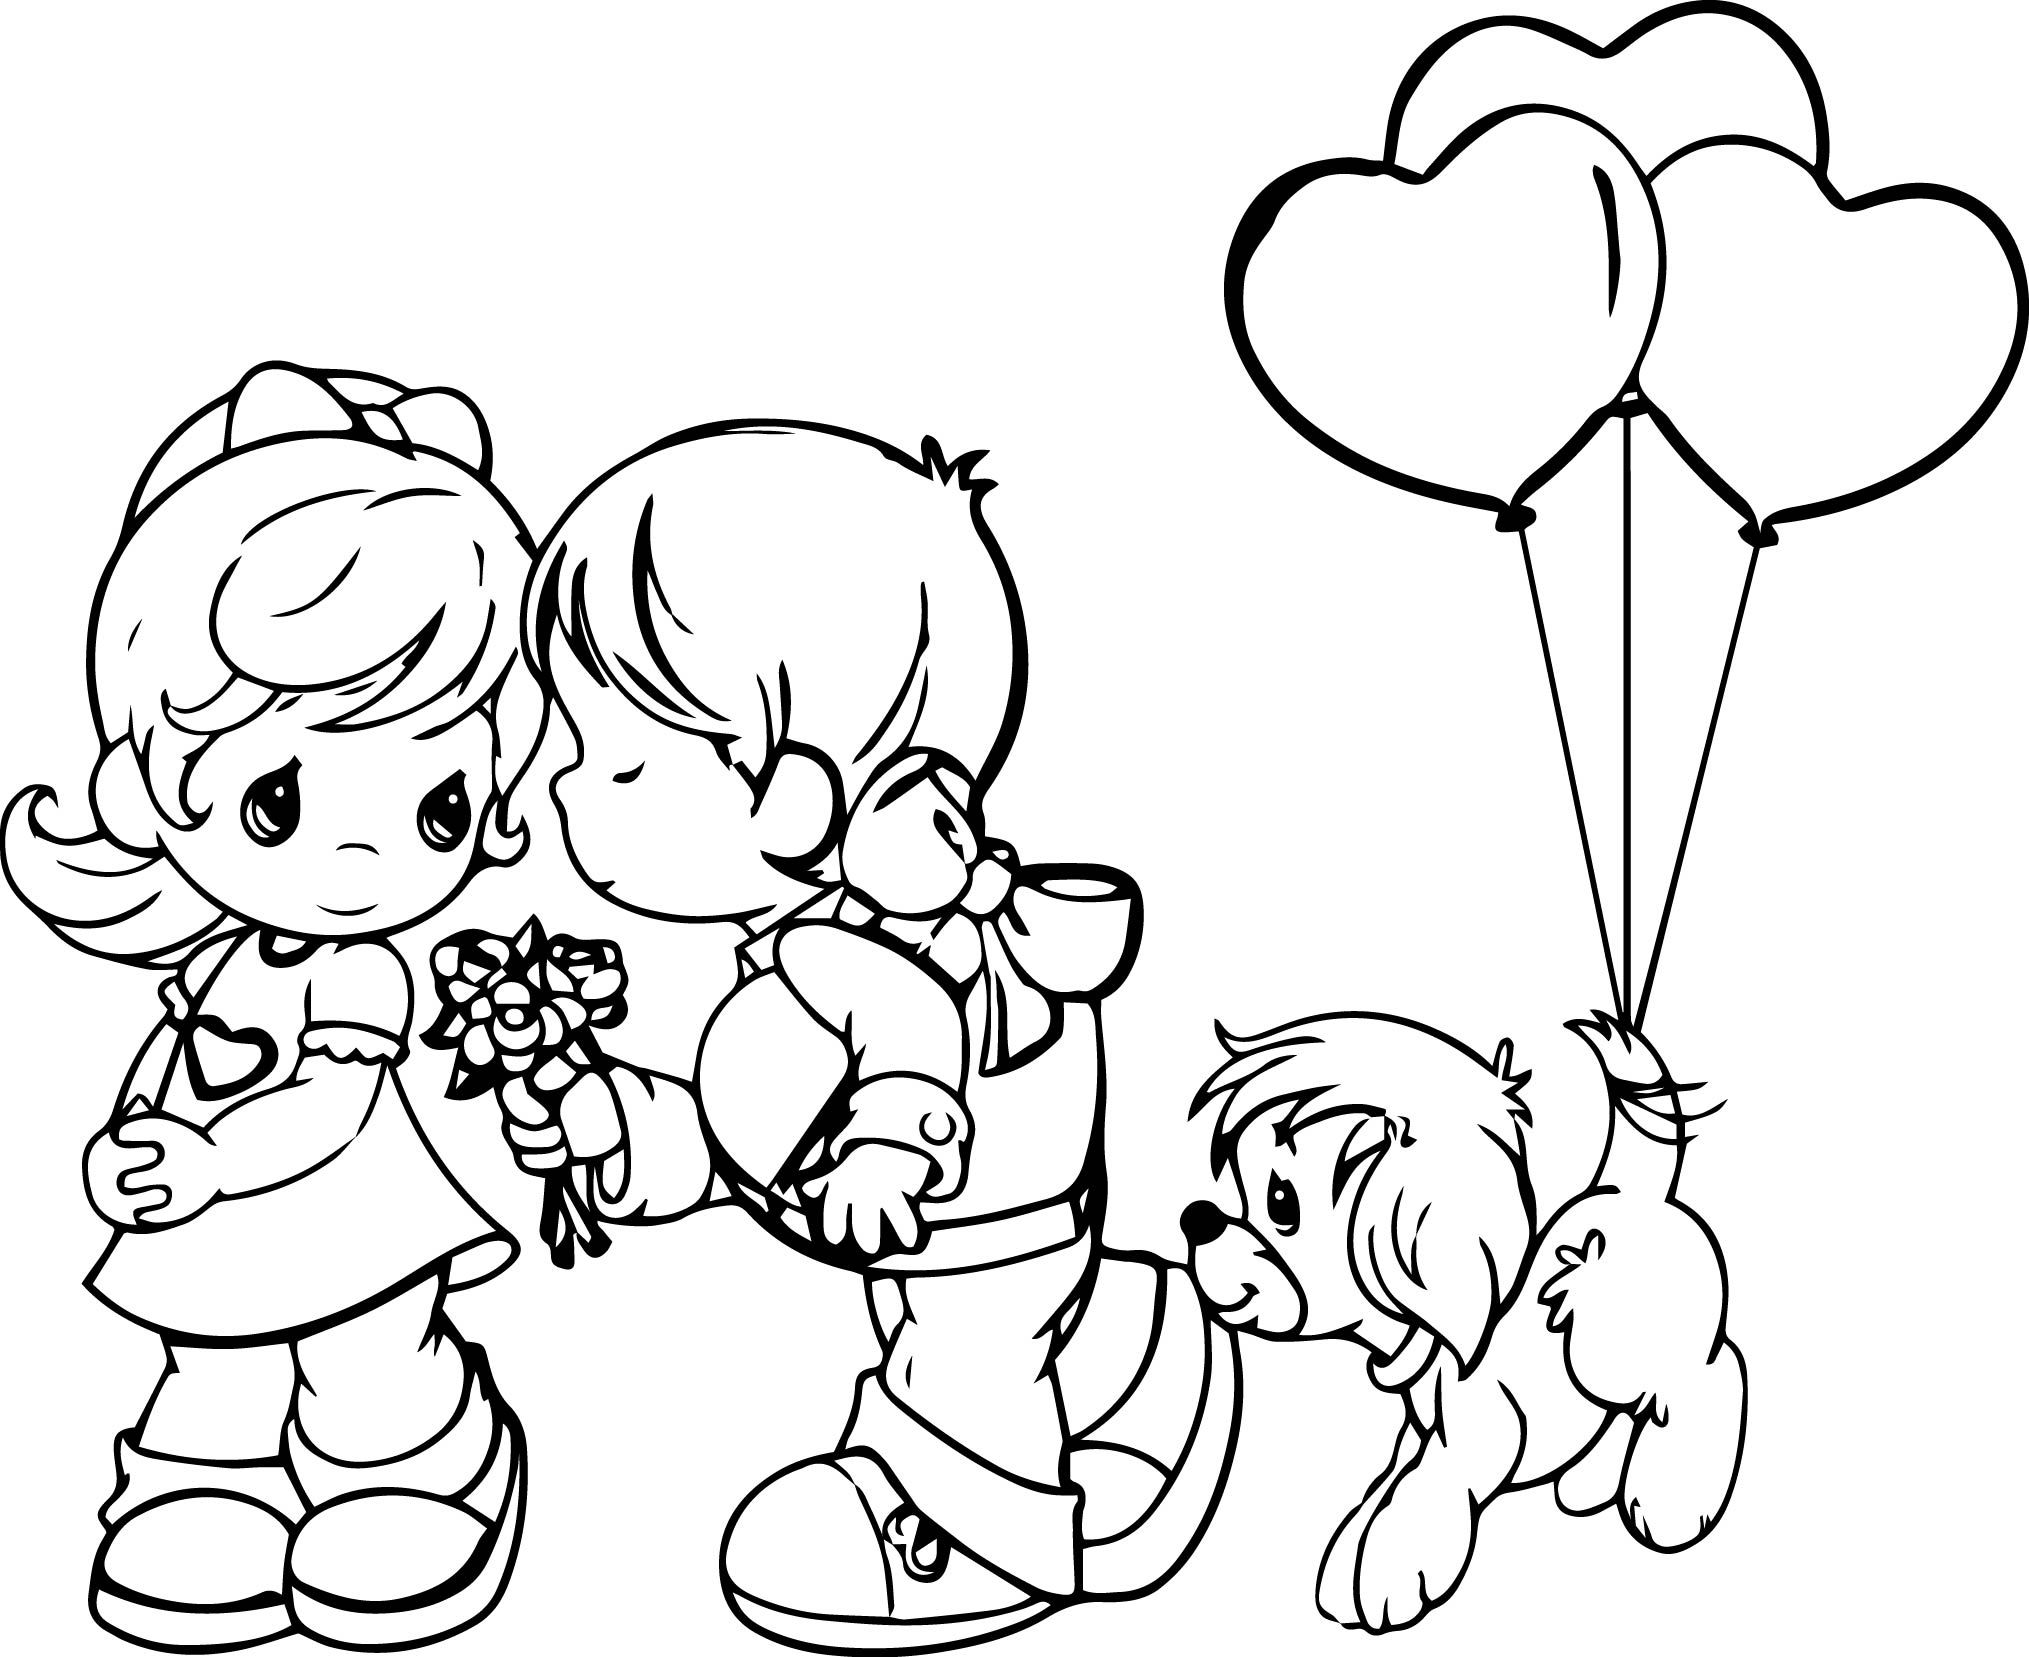 Printable Precious Moments Coloring Pages at GetDrawings.com | Free ...